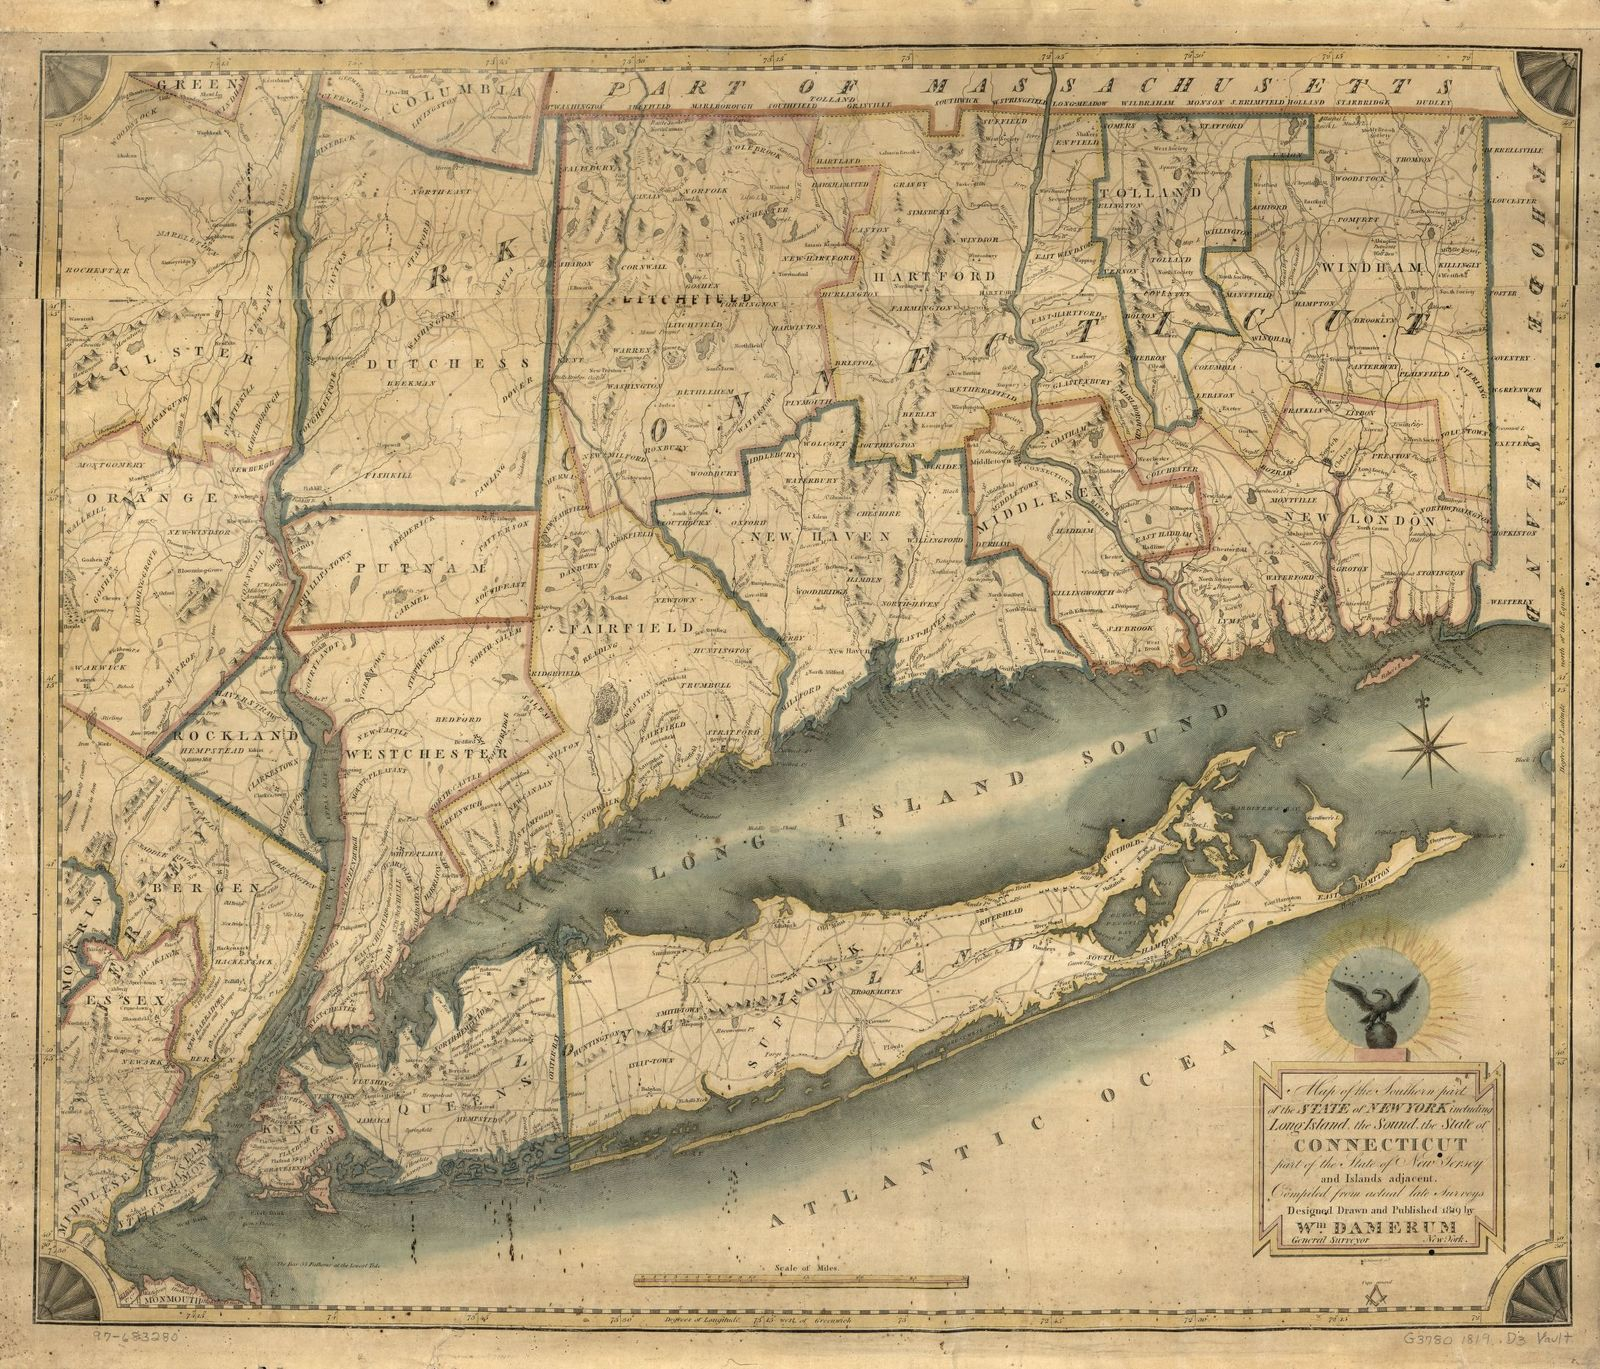 Map Of New York New Jersey And Connecticut.Map Of The Southern Part Of The State Of New York Including Long